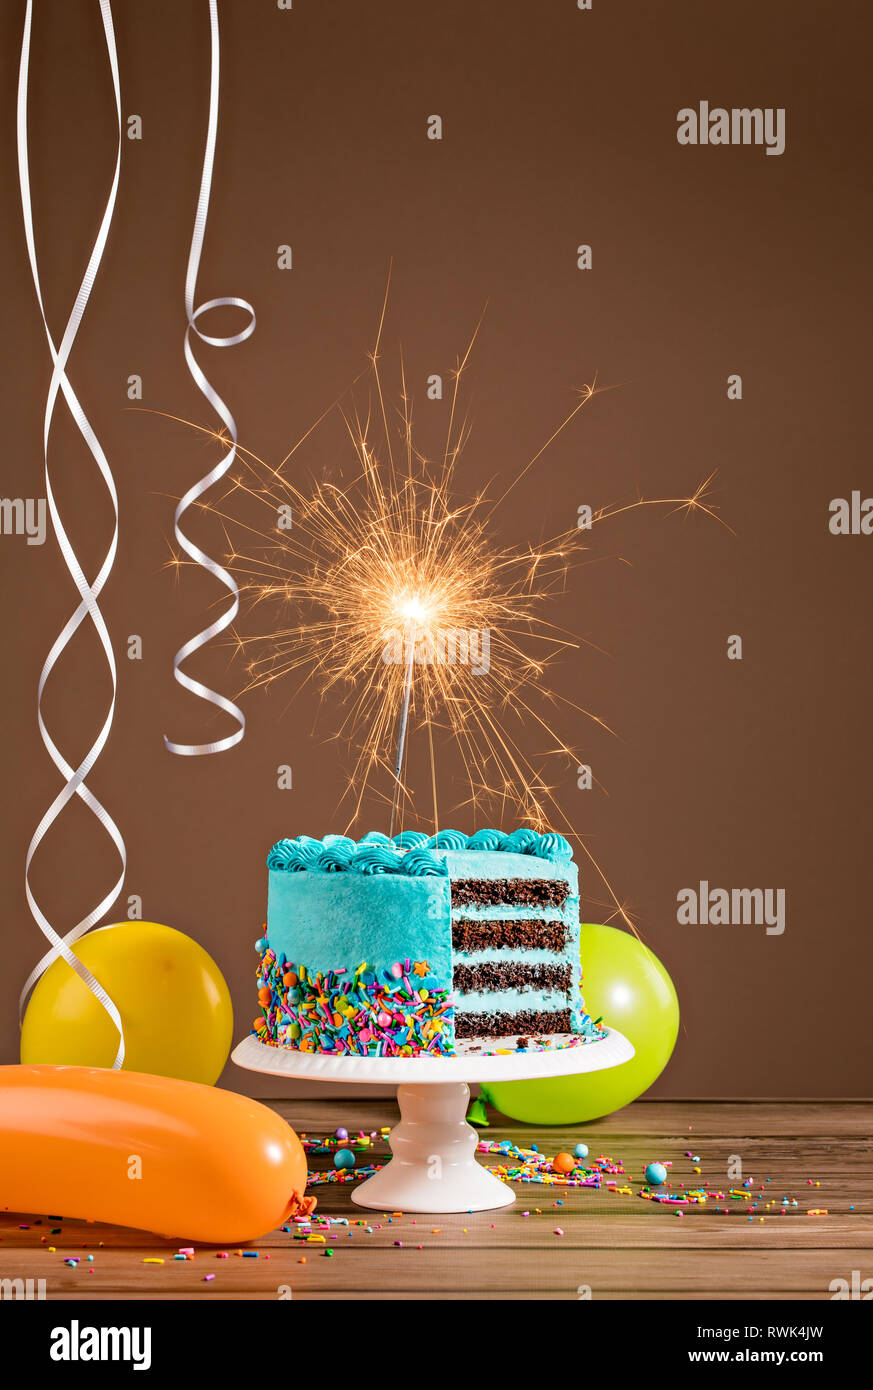 Surprising Blue Birthday Cake With Sparkler And Colorful Balloons Stock Photo Funny Birthday Cards Online Hendilapandamsfinfo